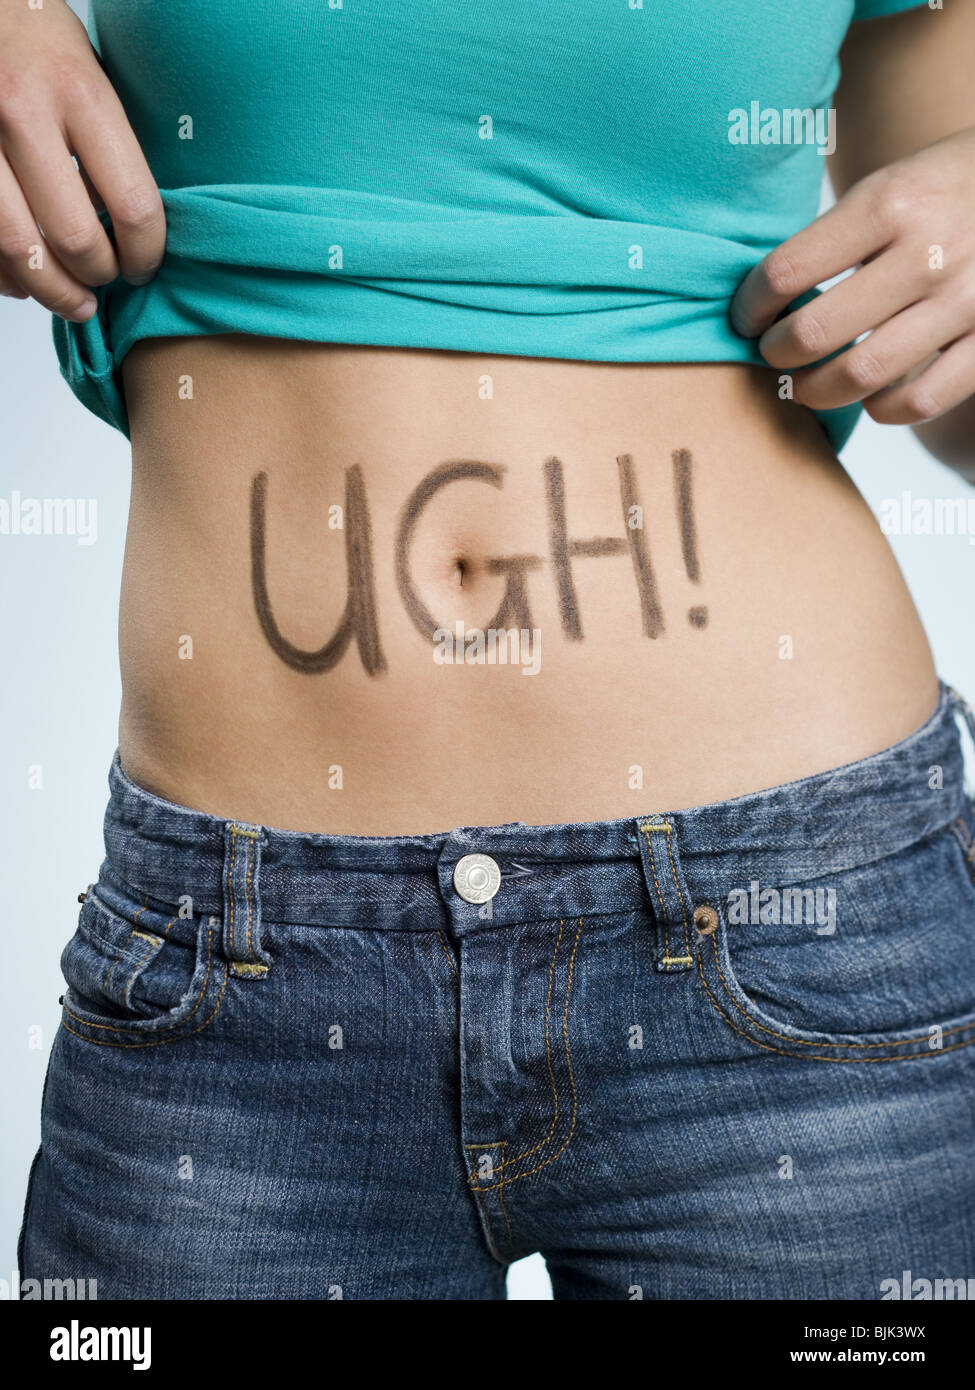 Female Abdomen with UGH! written on it Stock Photo